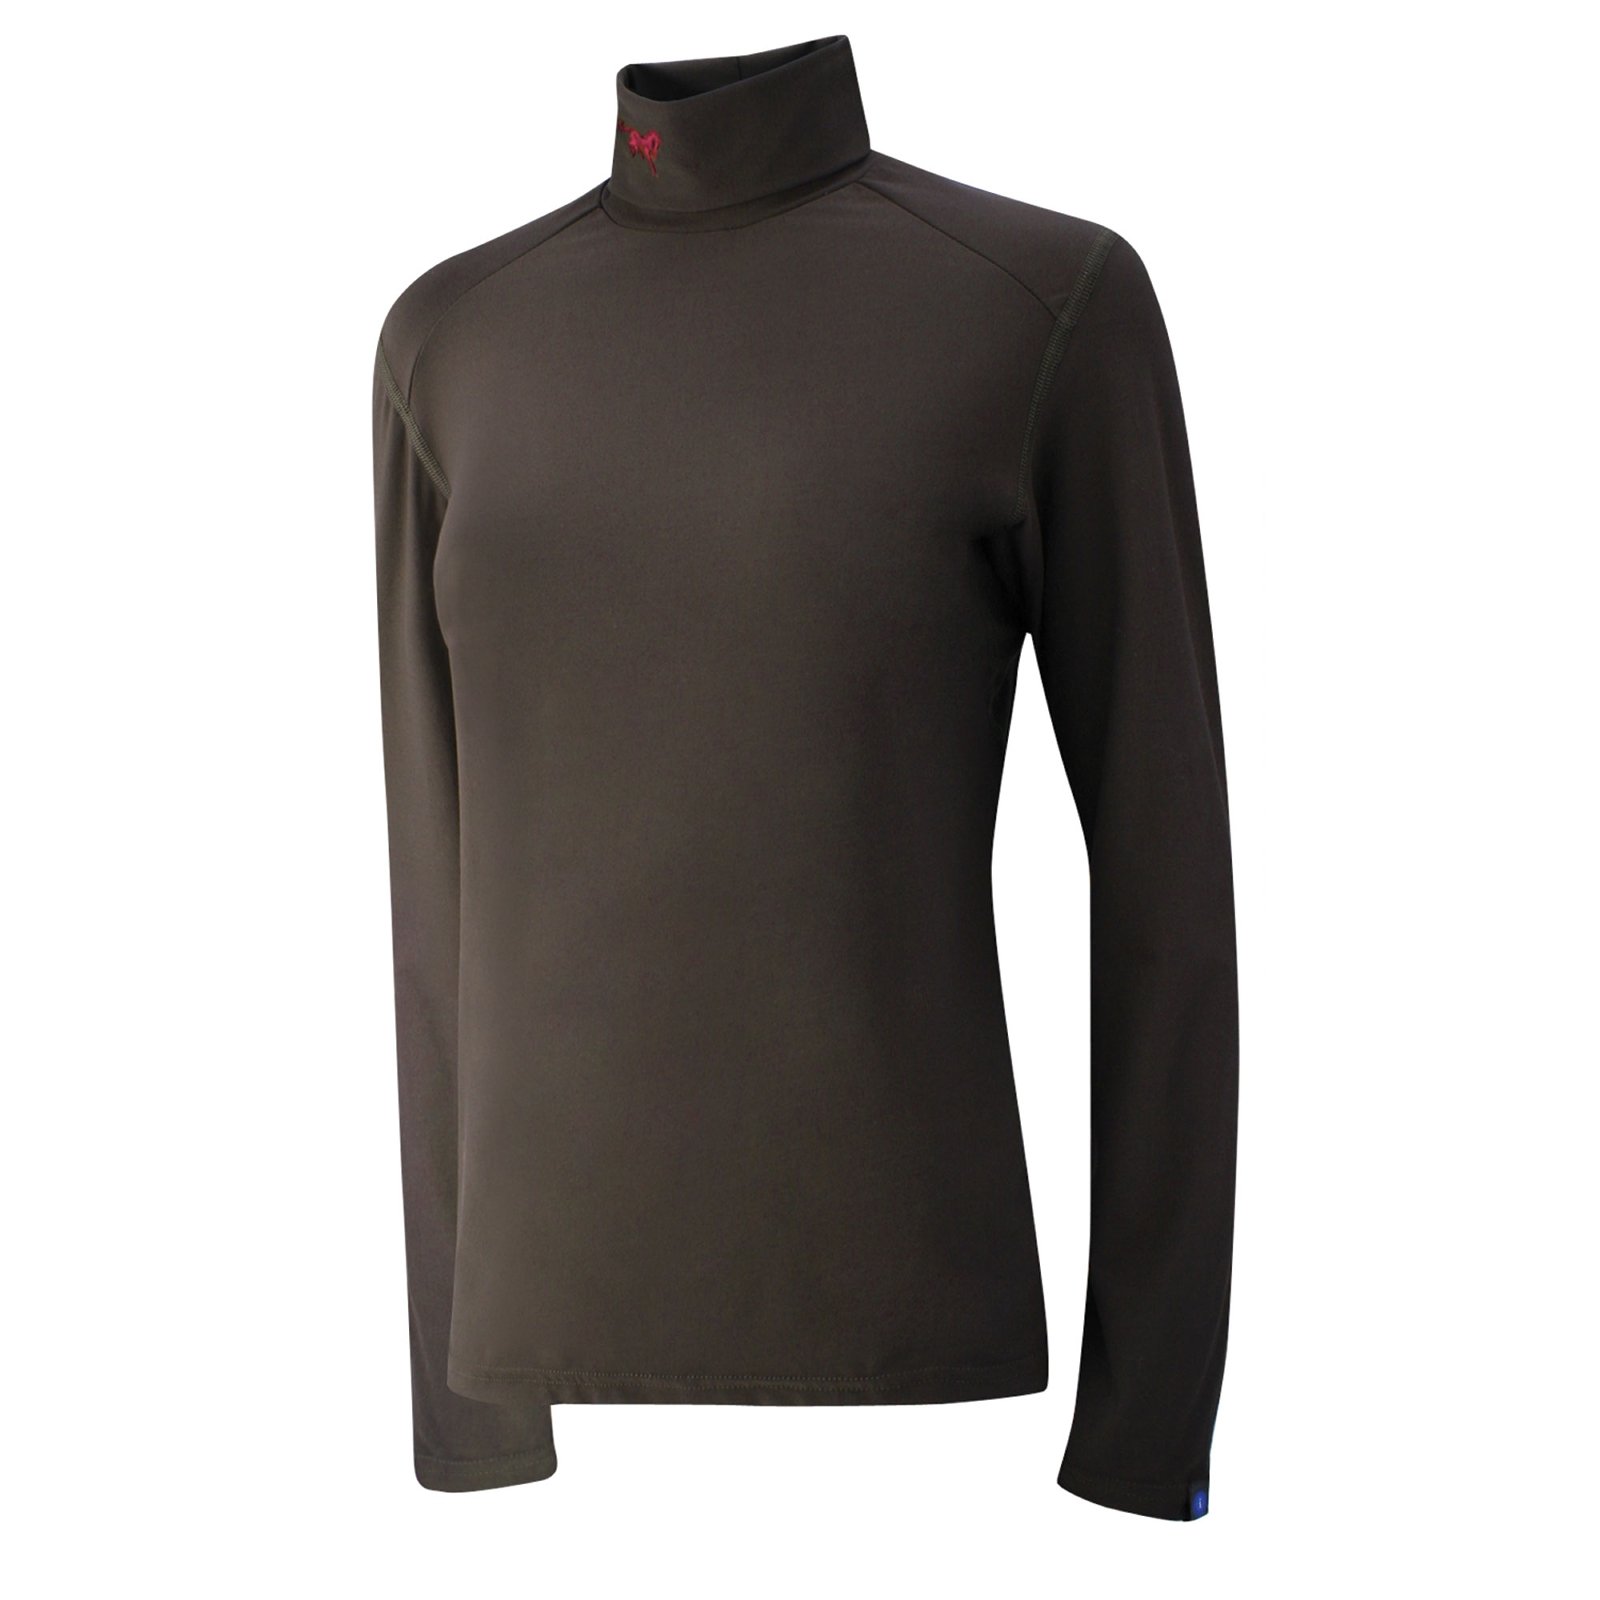 Irideon Kids' Thermaluxe Turtleneck